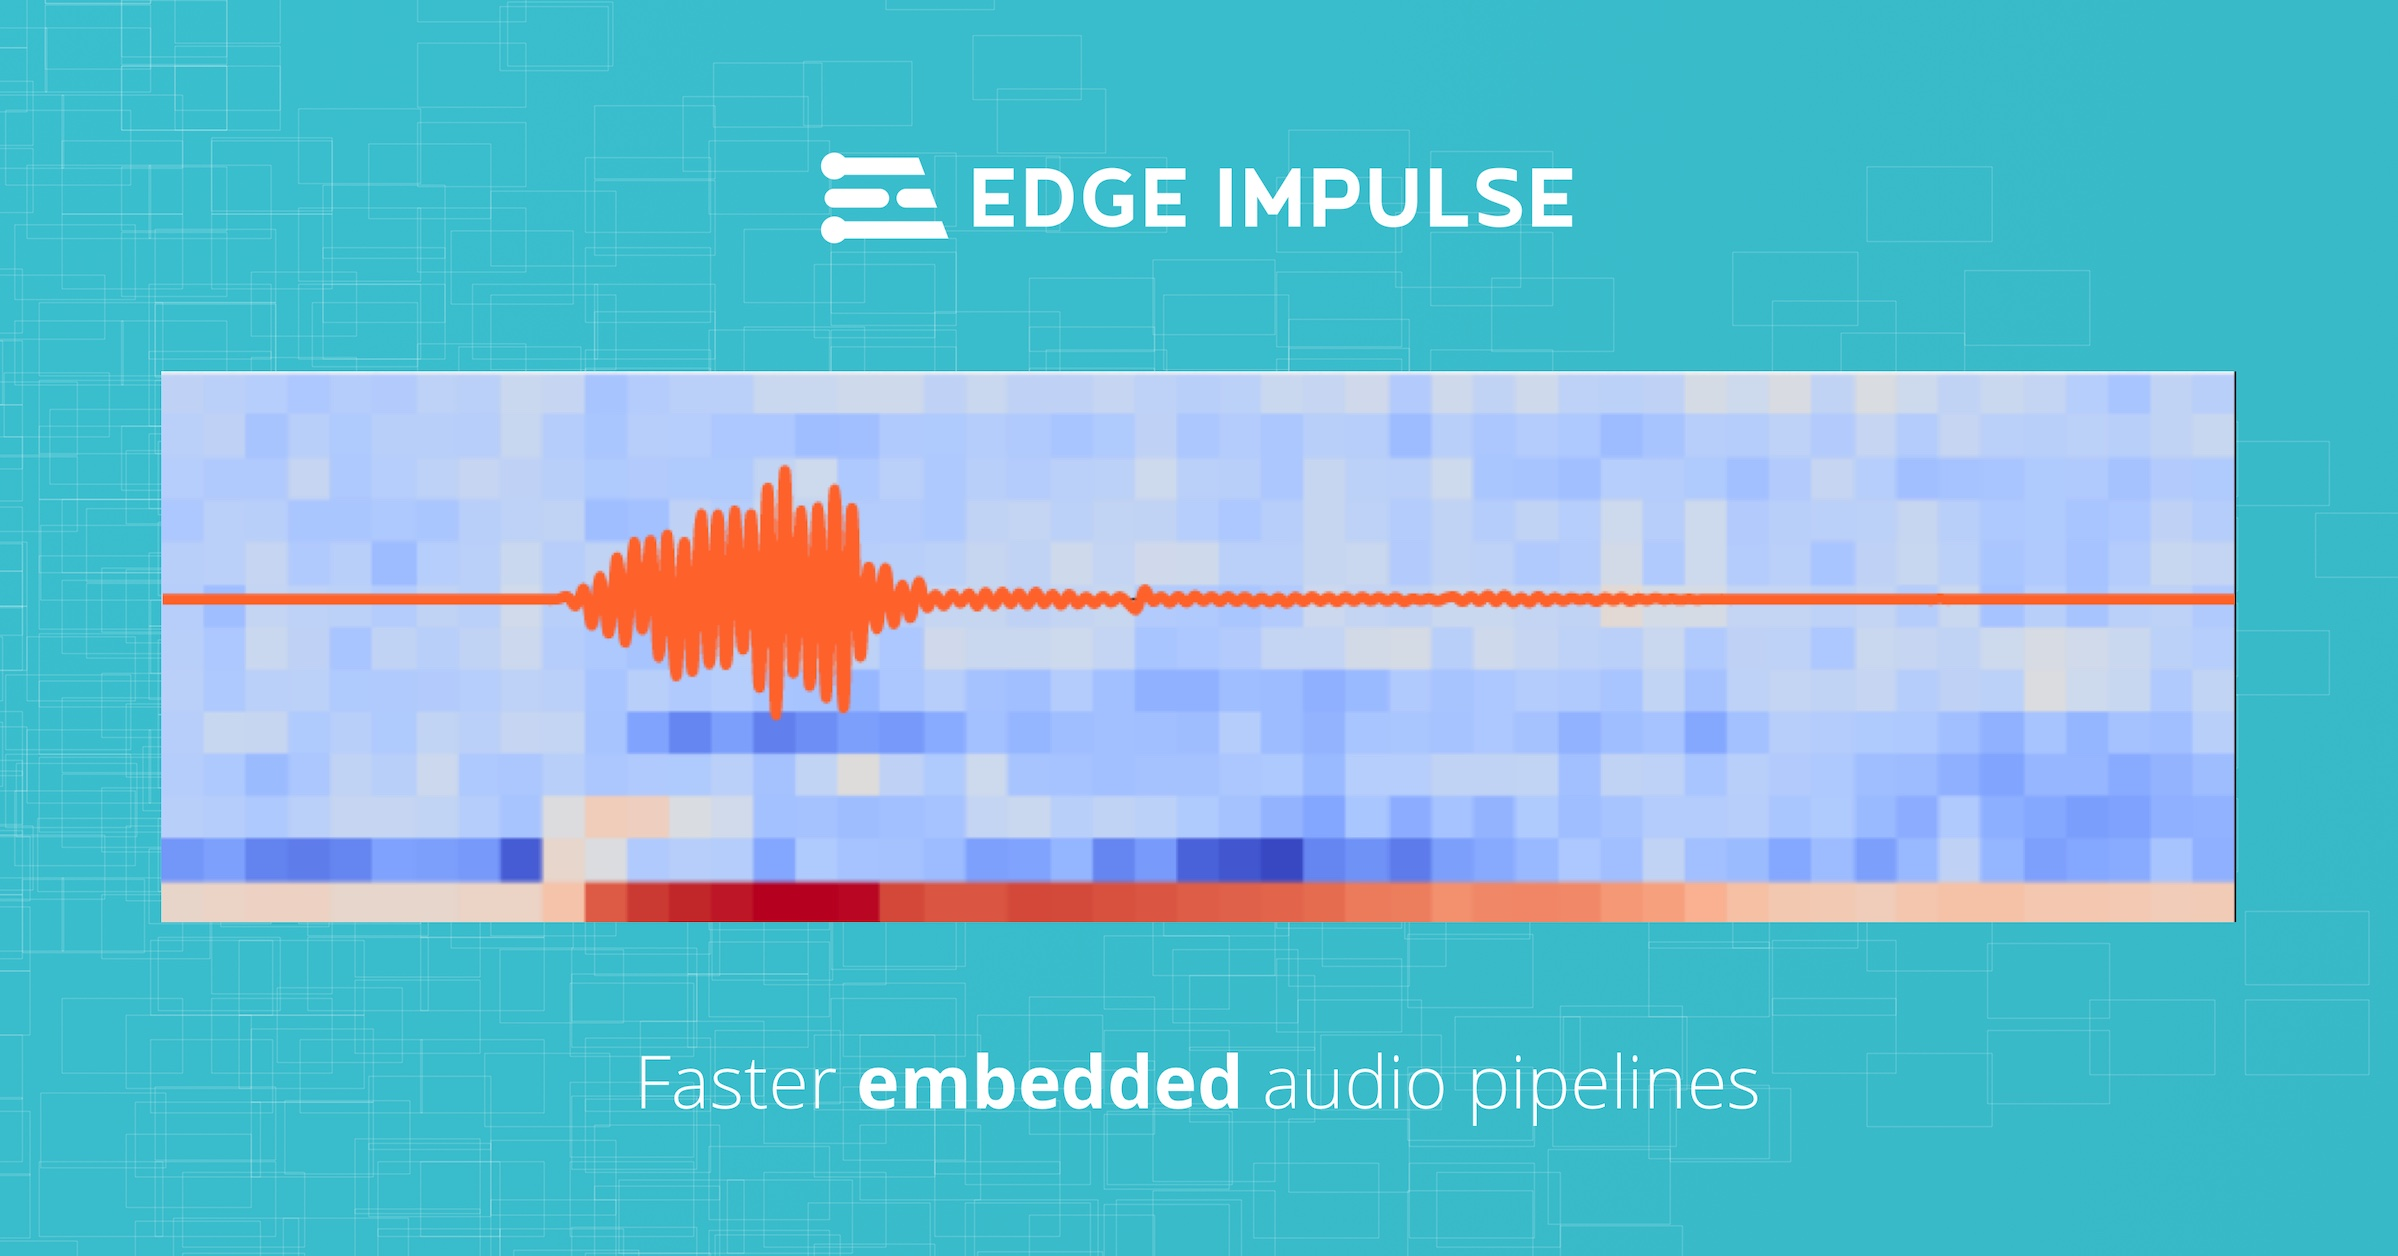 Making our audio pipeline 7% faster using a fast log